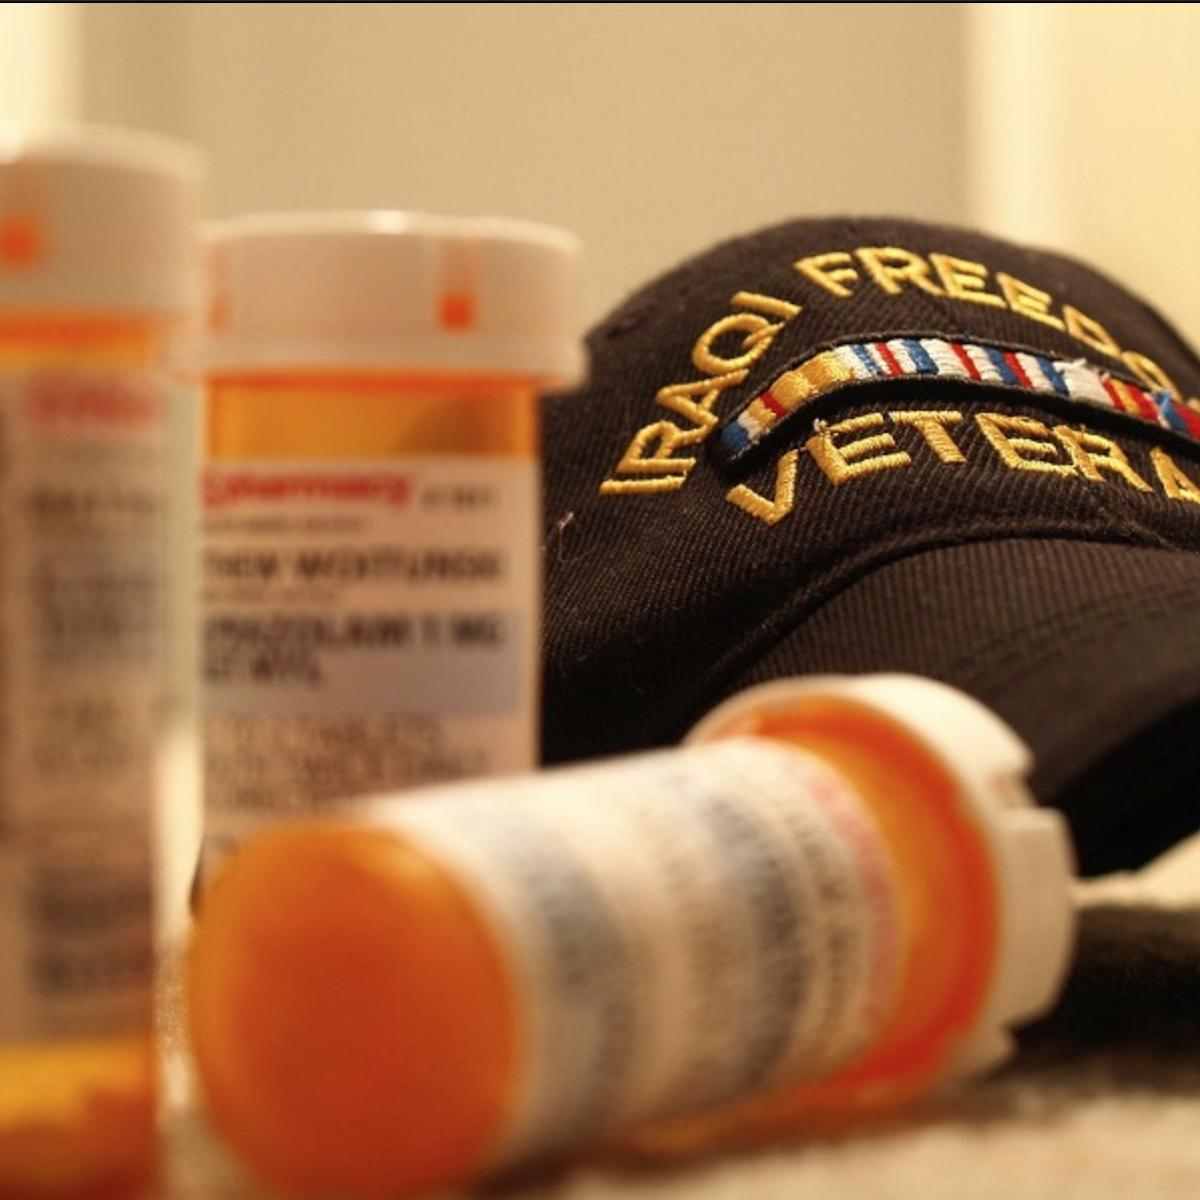 Iraq veteran baseball hat with prescription medicine bottles stock image from Wikimedia Commons